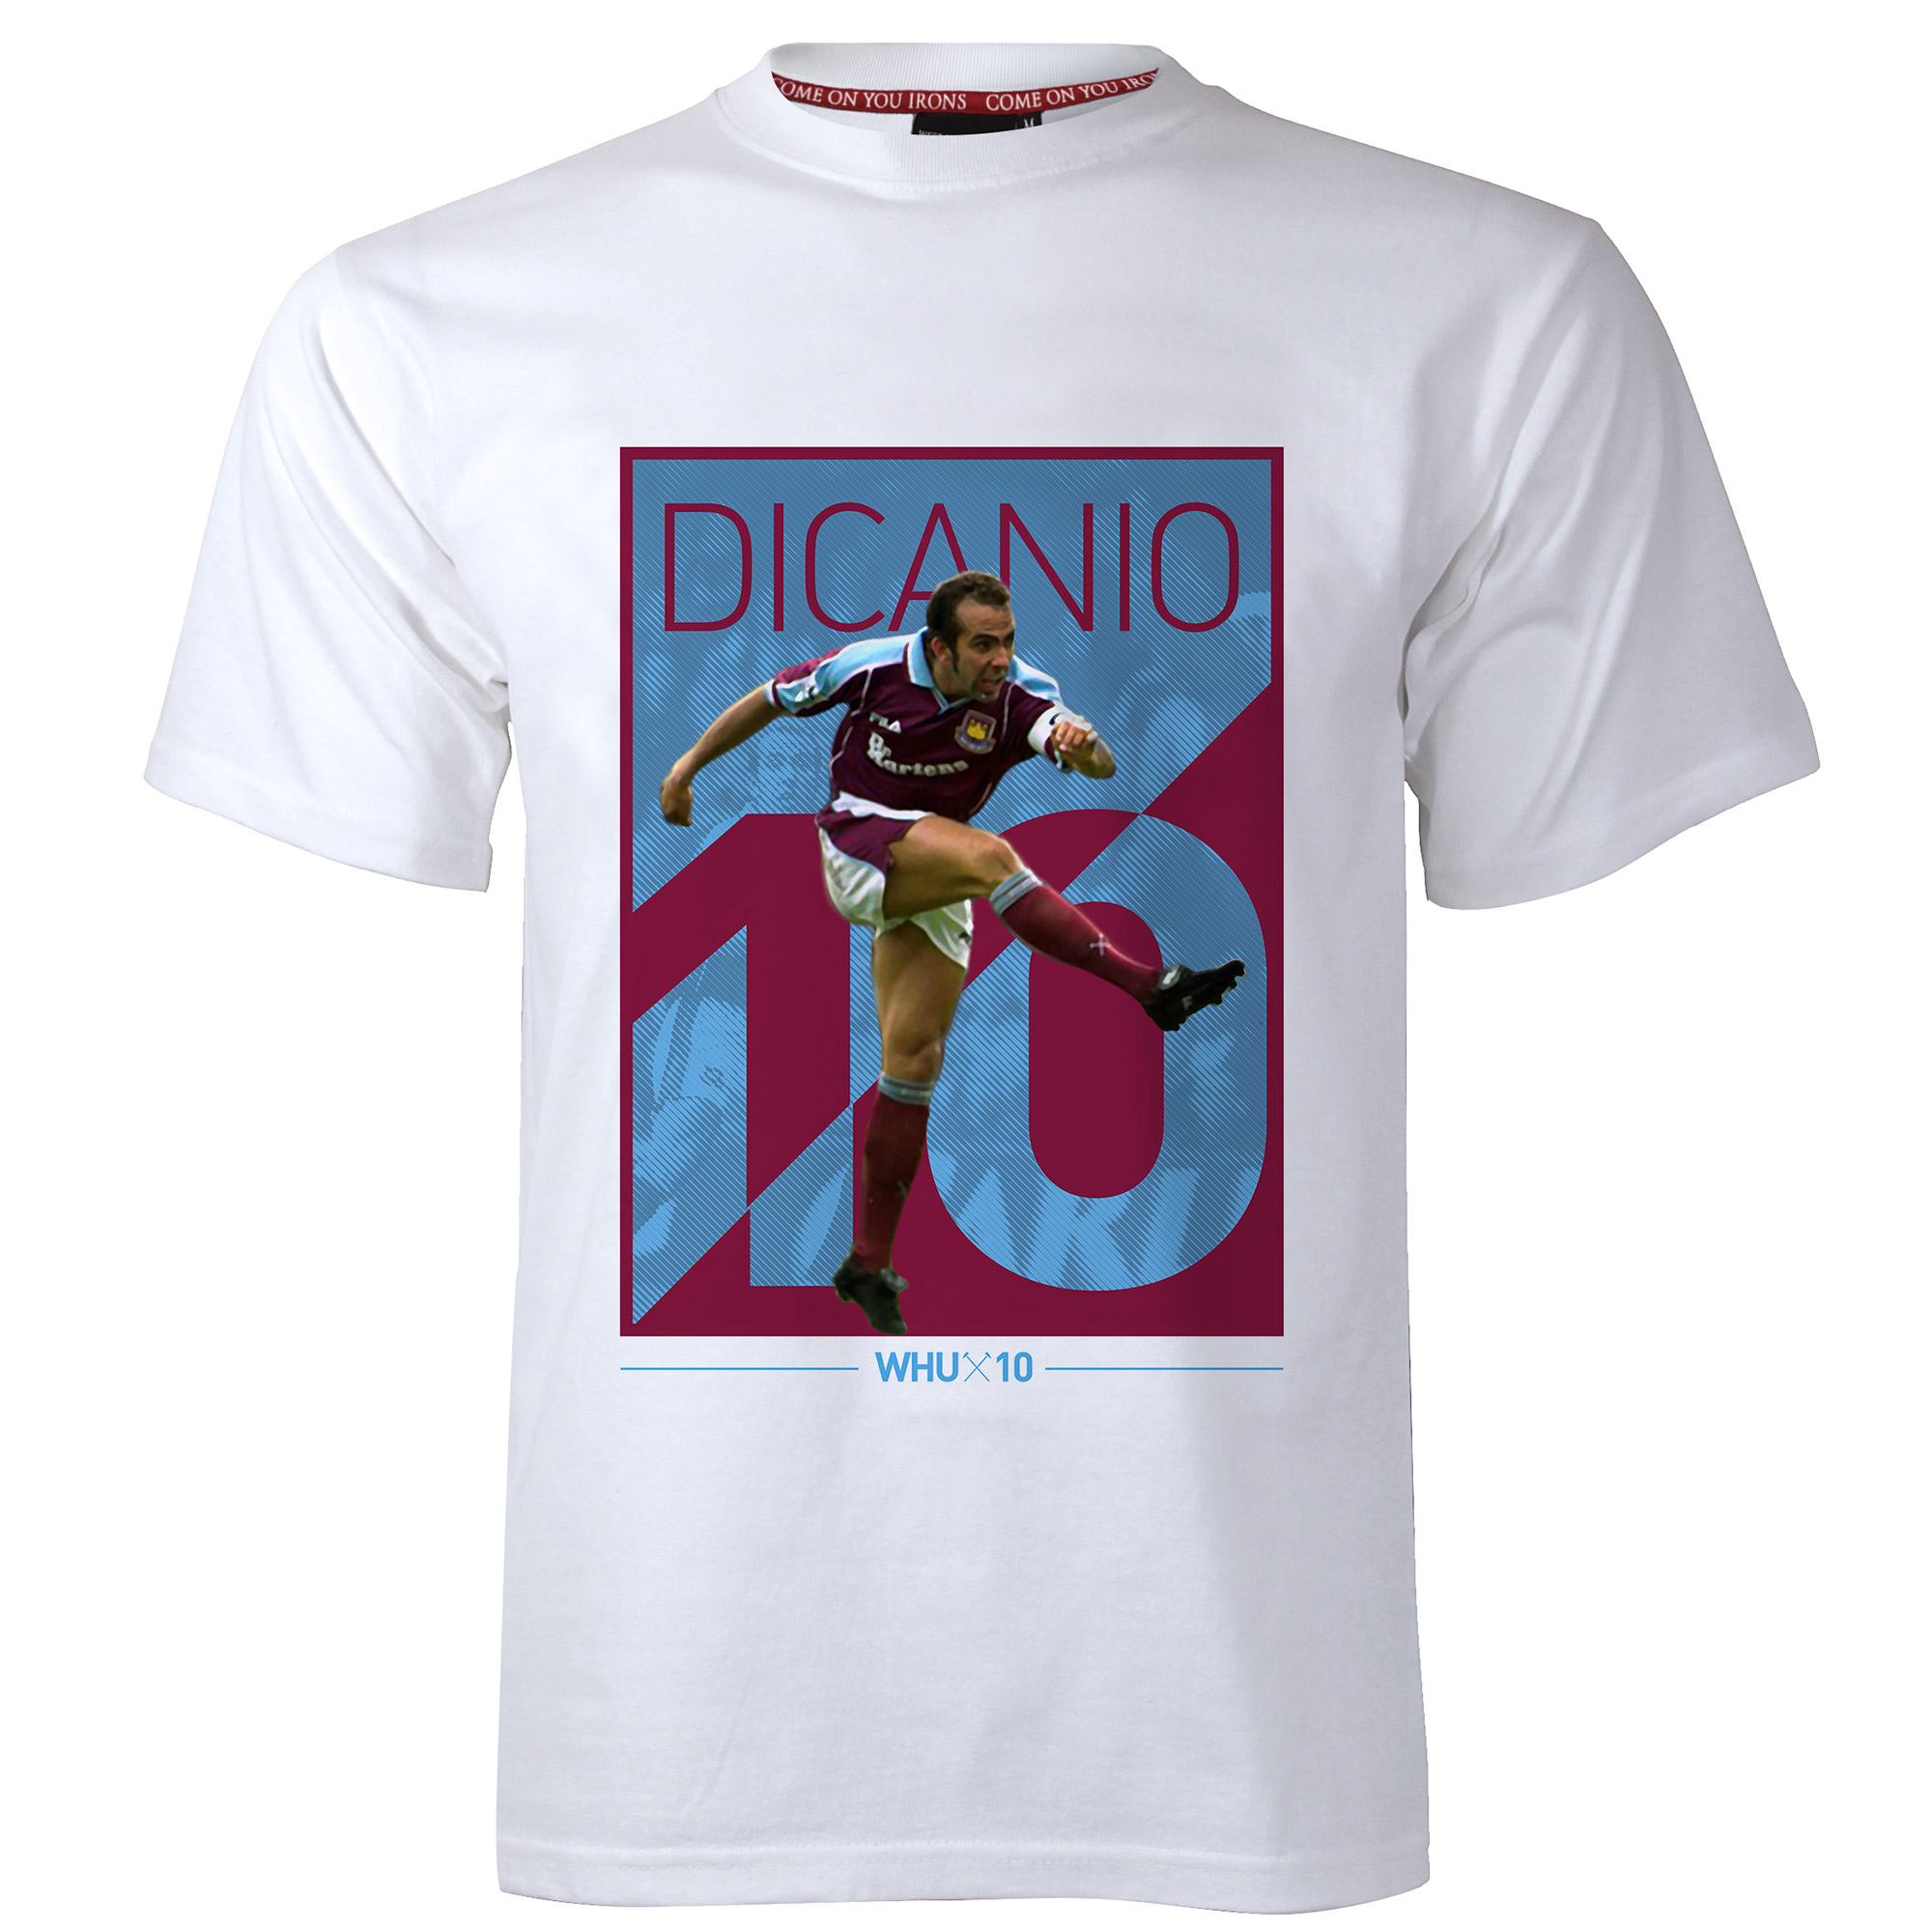 ADULT WHITE DI CANIO BLOCK T-SHIRT